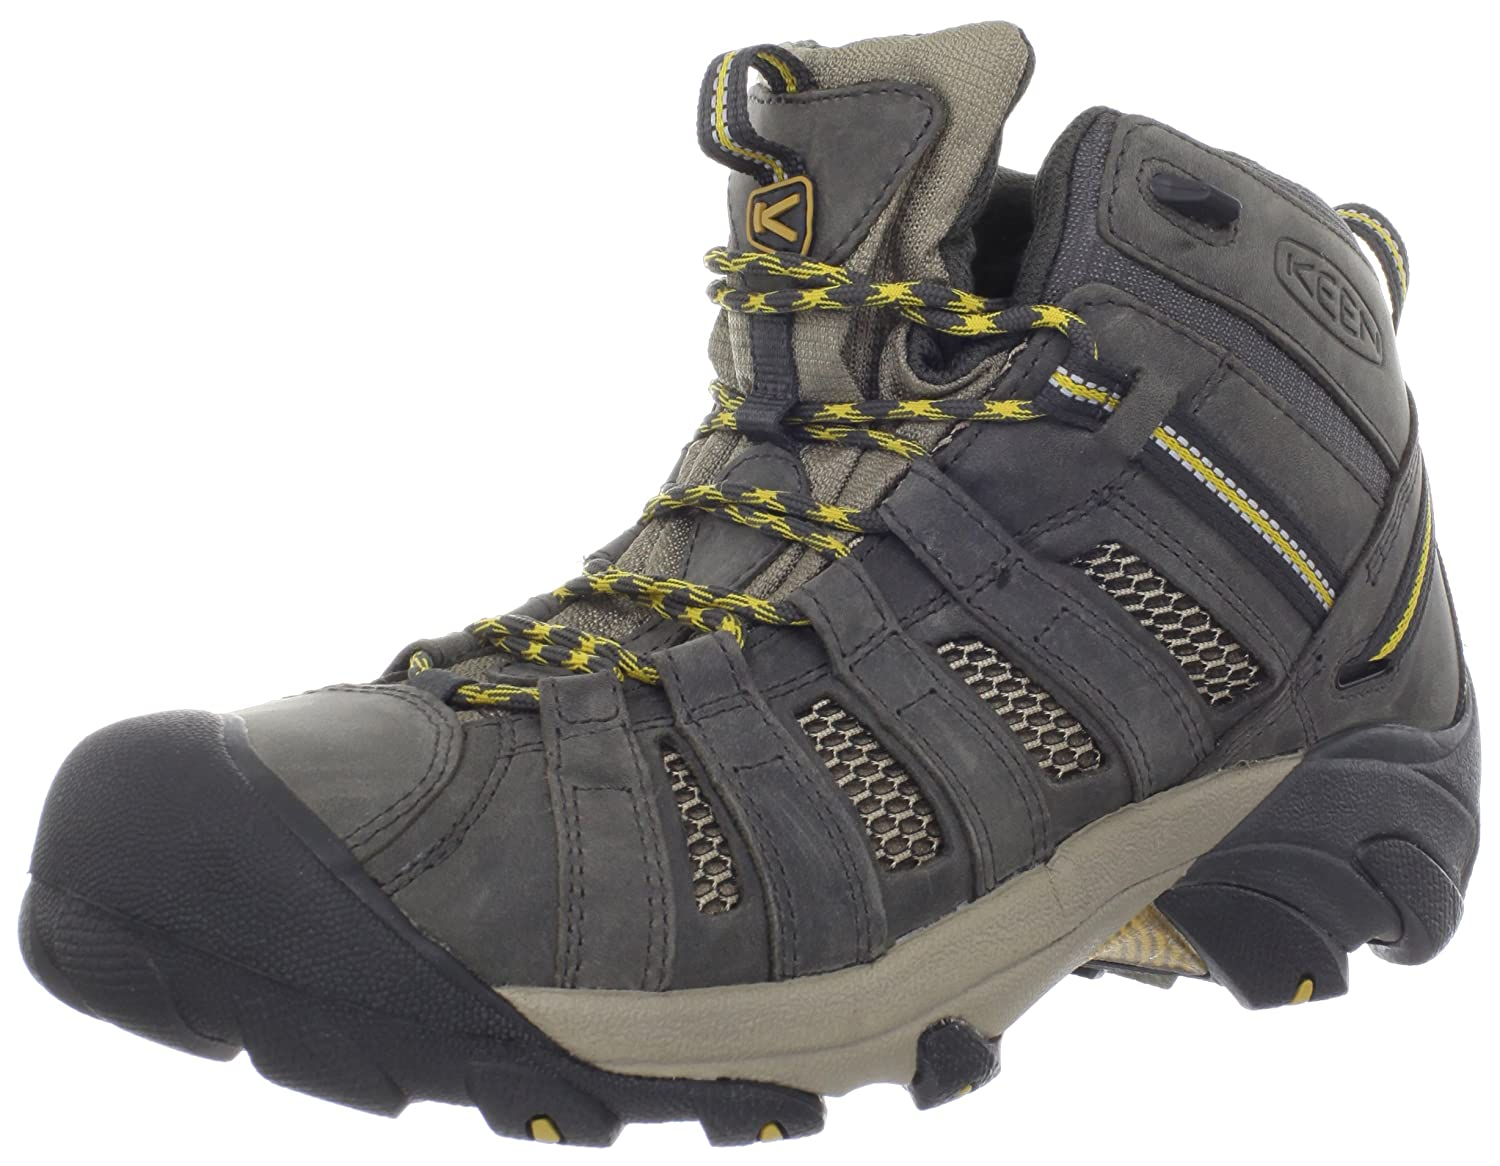 KEEN Men's Voyageur Mid Hiking Boot Keen Adults - US SHOES VOYAGEUR MID-M